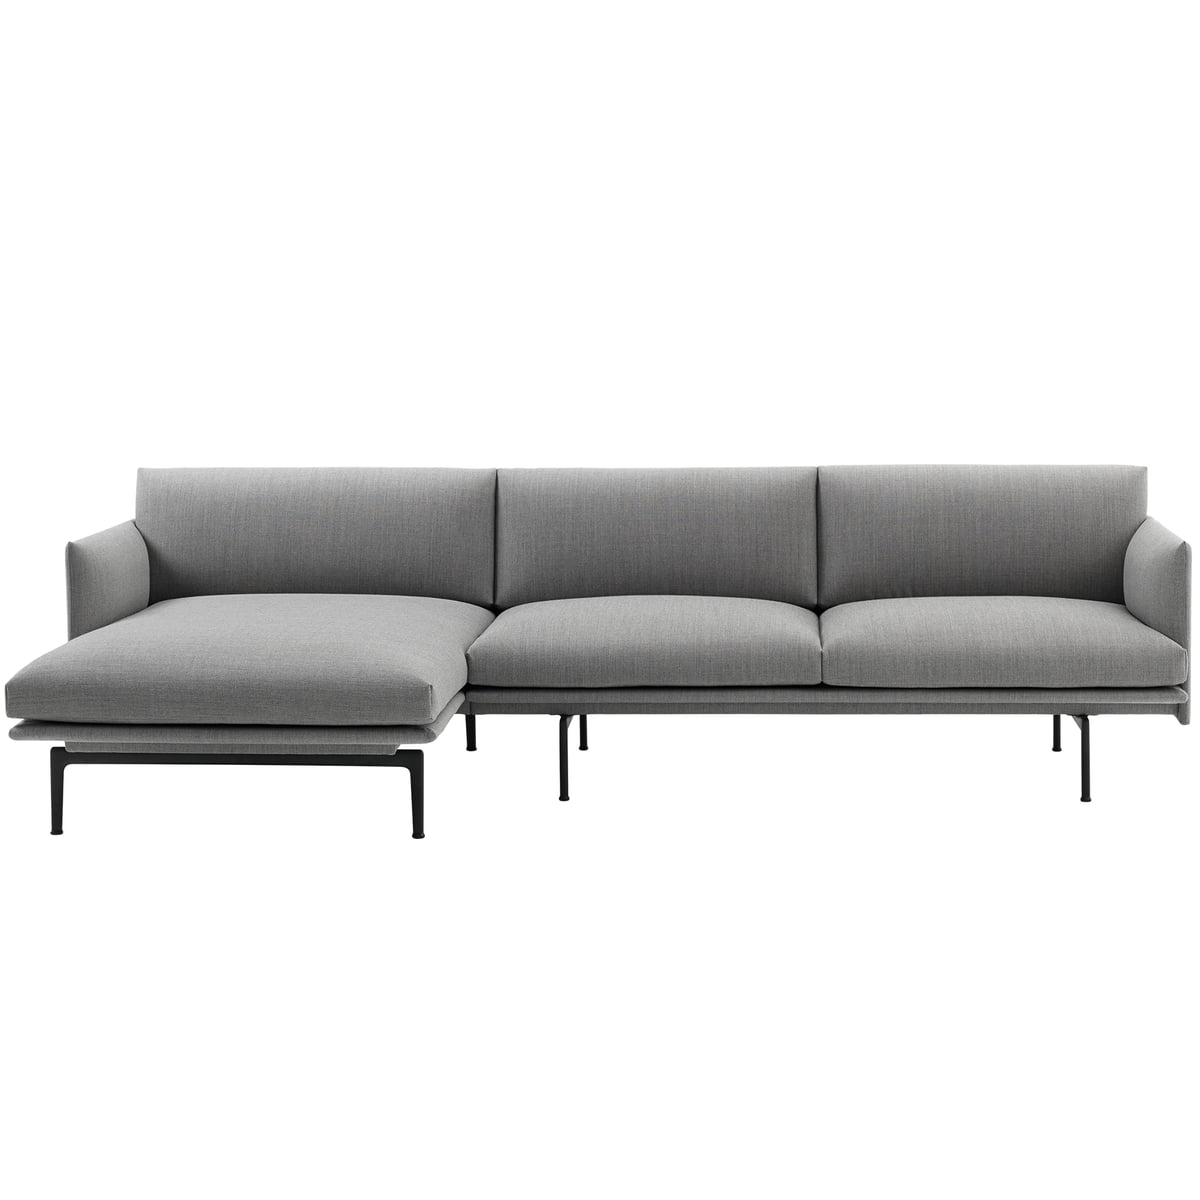 Full Size of Muuto Sofa Connect 2 Seater Uk Dimensions Furniture Outline Leather Airy Sofabord Large Pris Chaise Longue Oslo Mit Schlaffunktion Federkern Rolf Benz Xxl Sofa Muuto Sofa